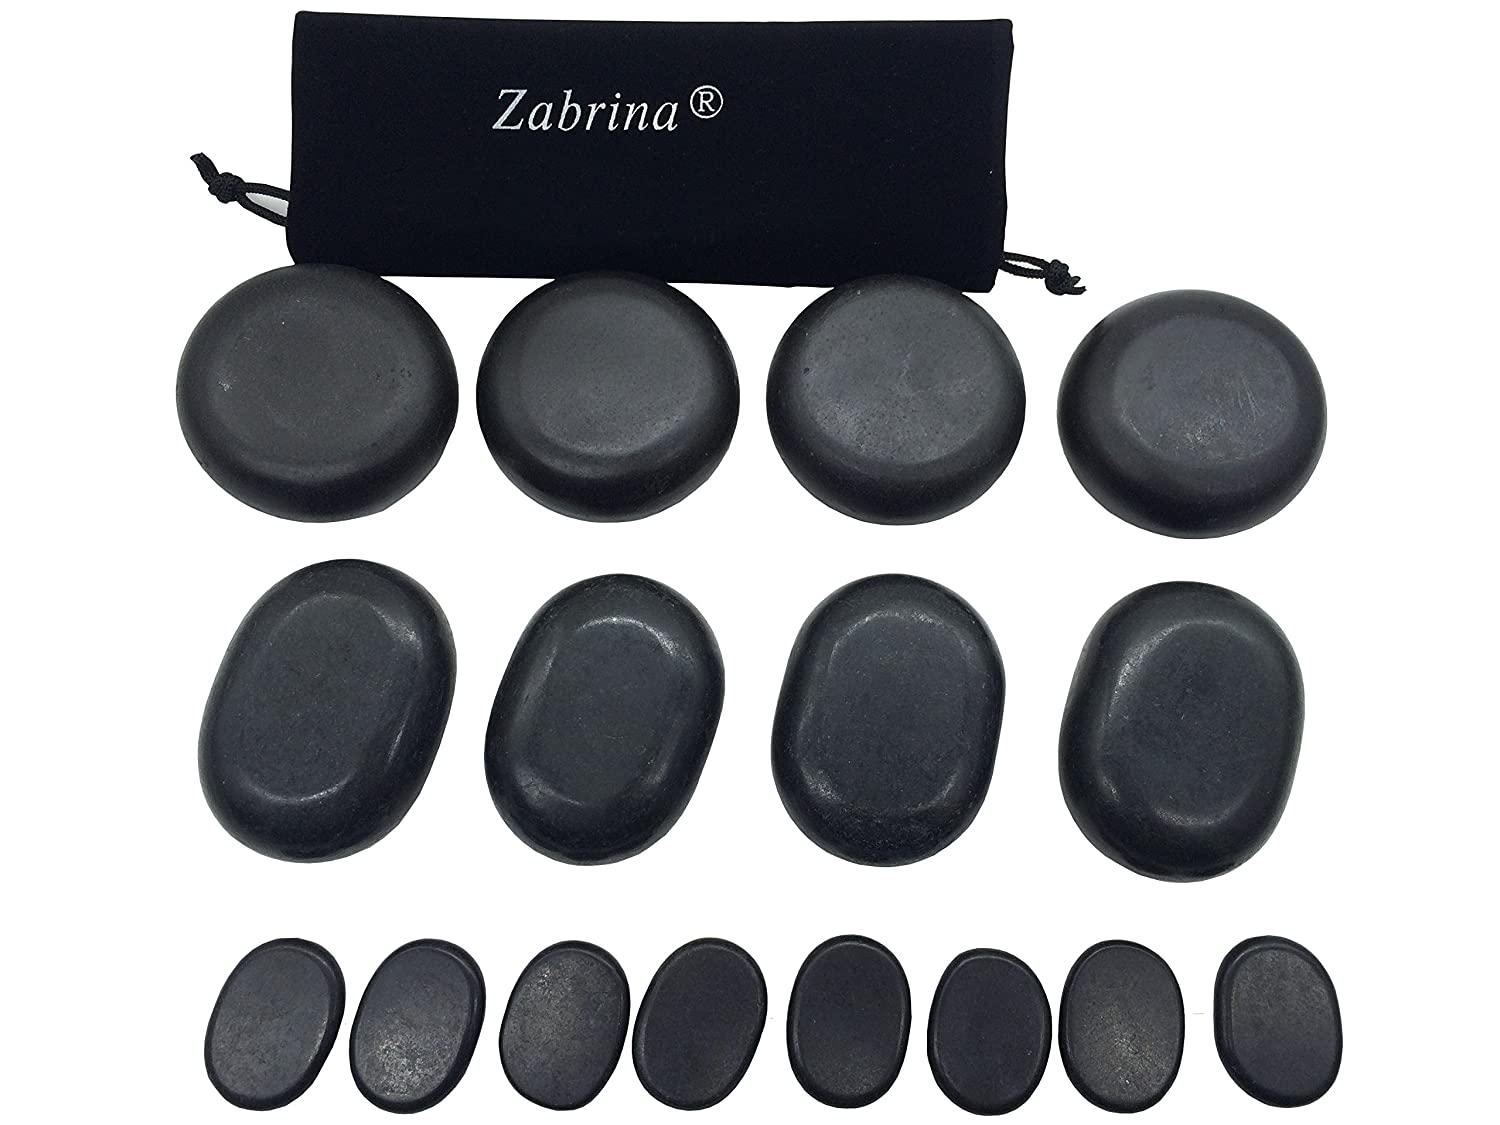 Zabrina 16 Pcs Professional Massage Hot Stone Set Basalt Hot Rocks Stones